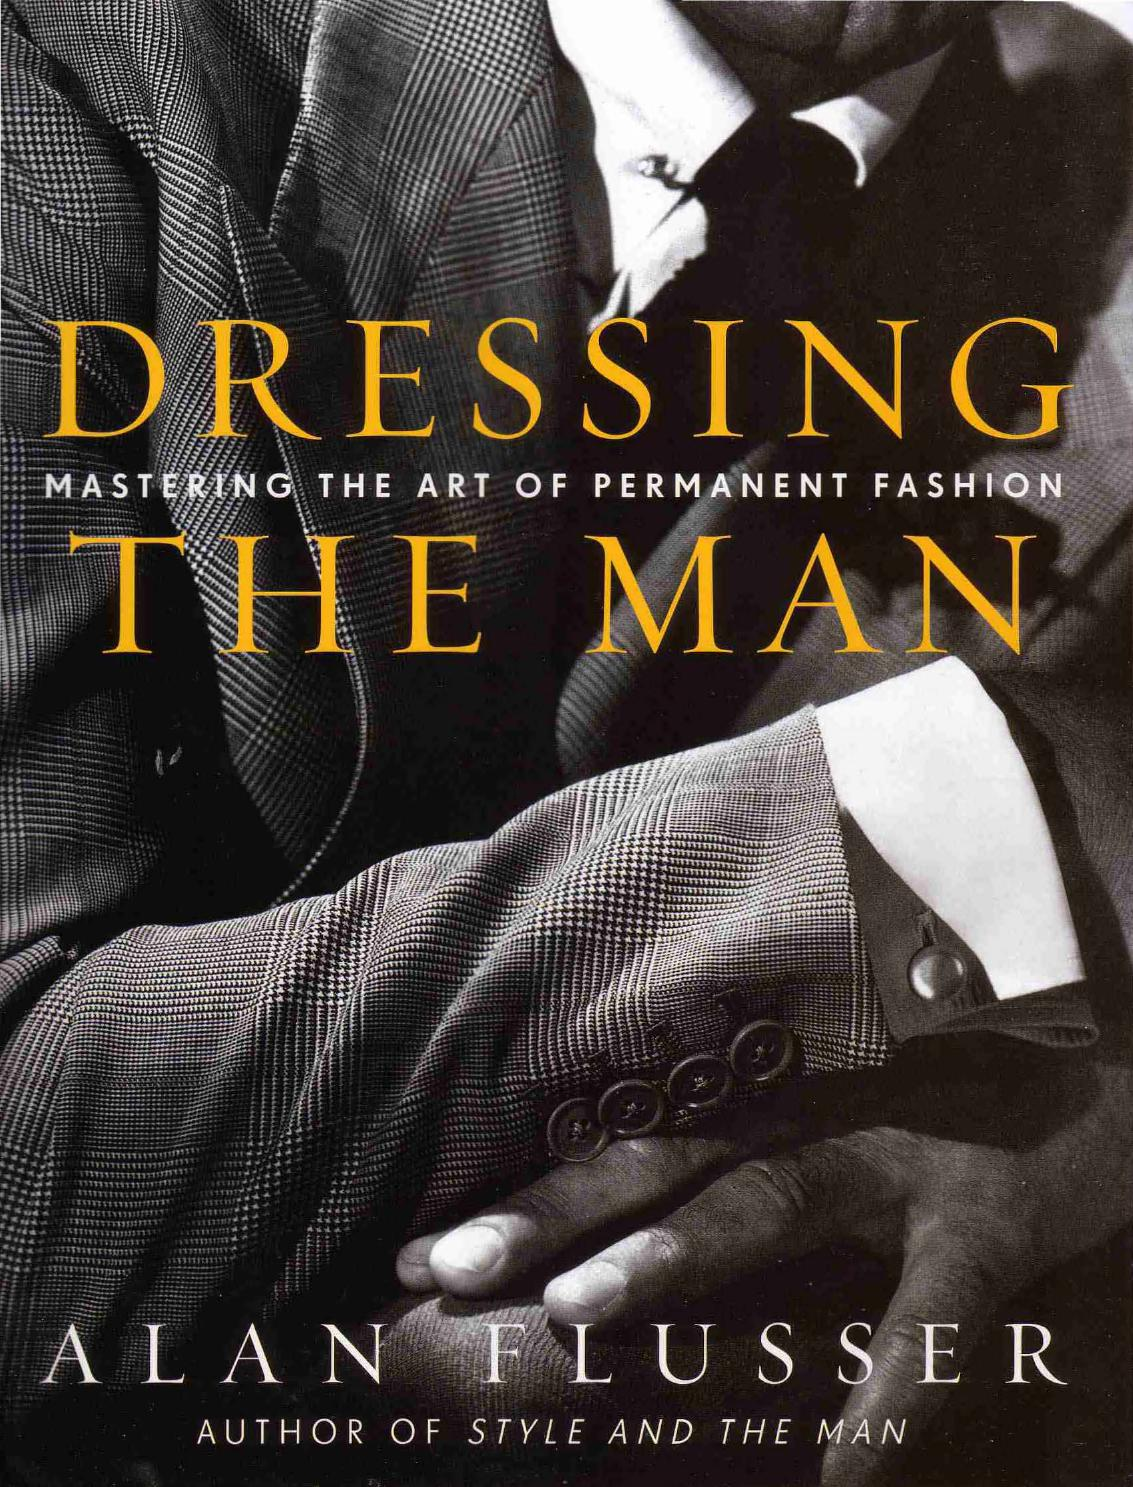 Dressing the man mastering the art of permanent fashion by